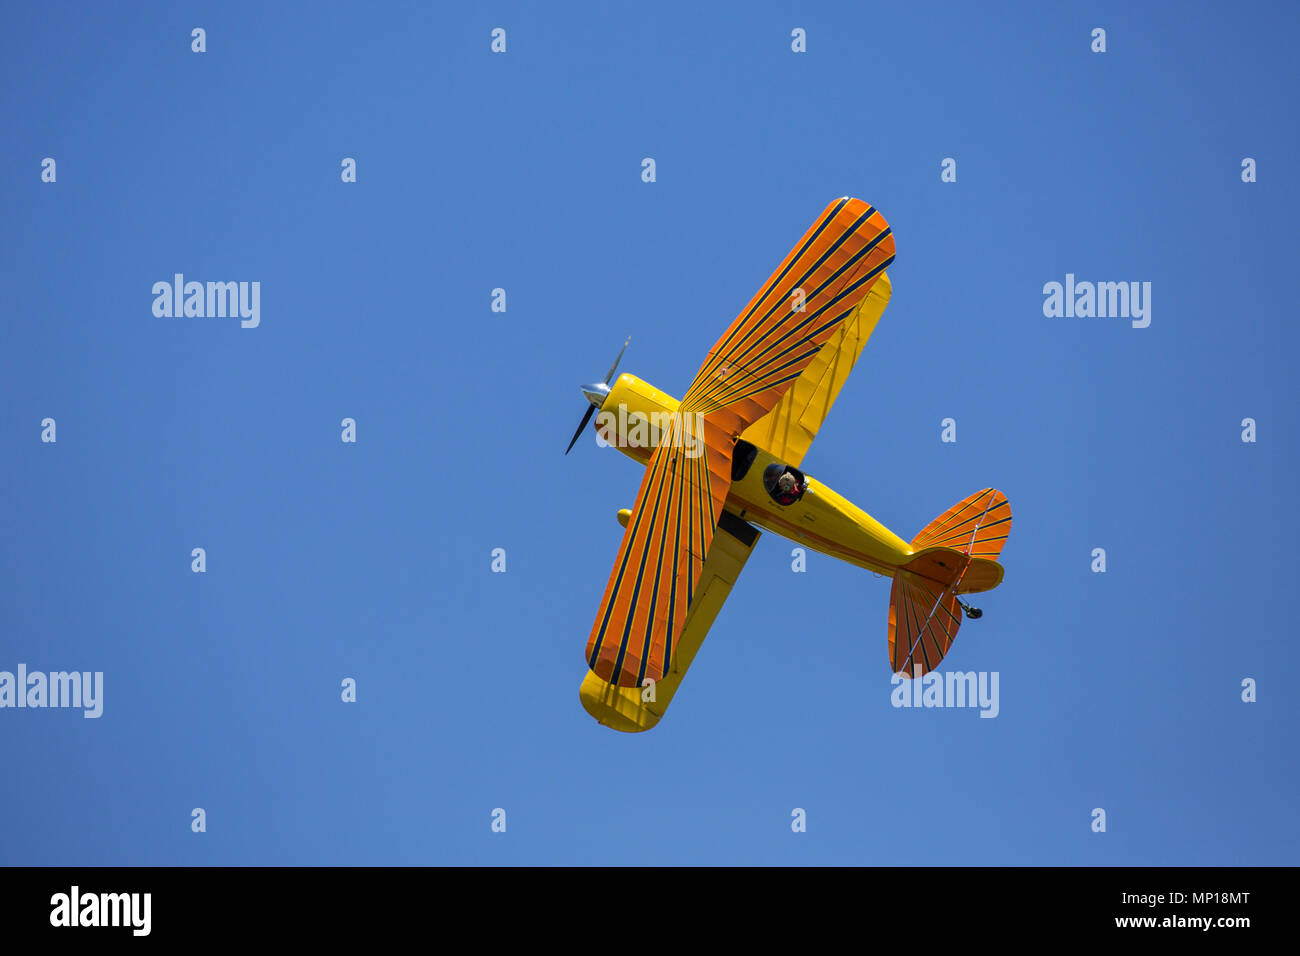 Great Lakes Biplane at the Central Texas Airshow - Stock Image